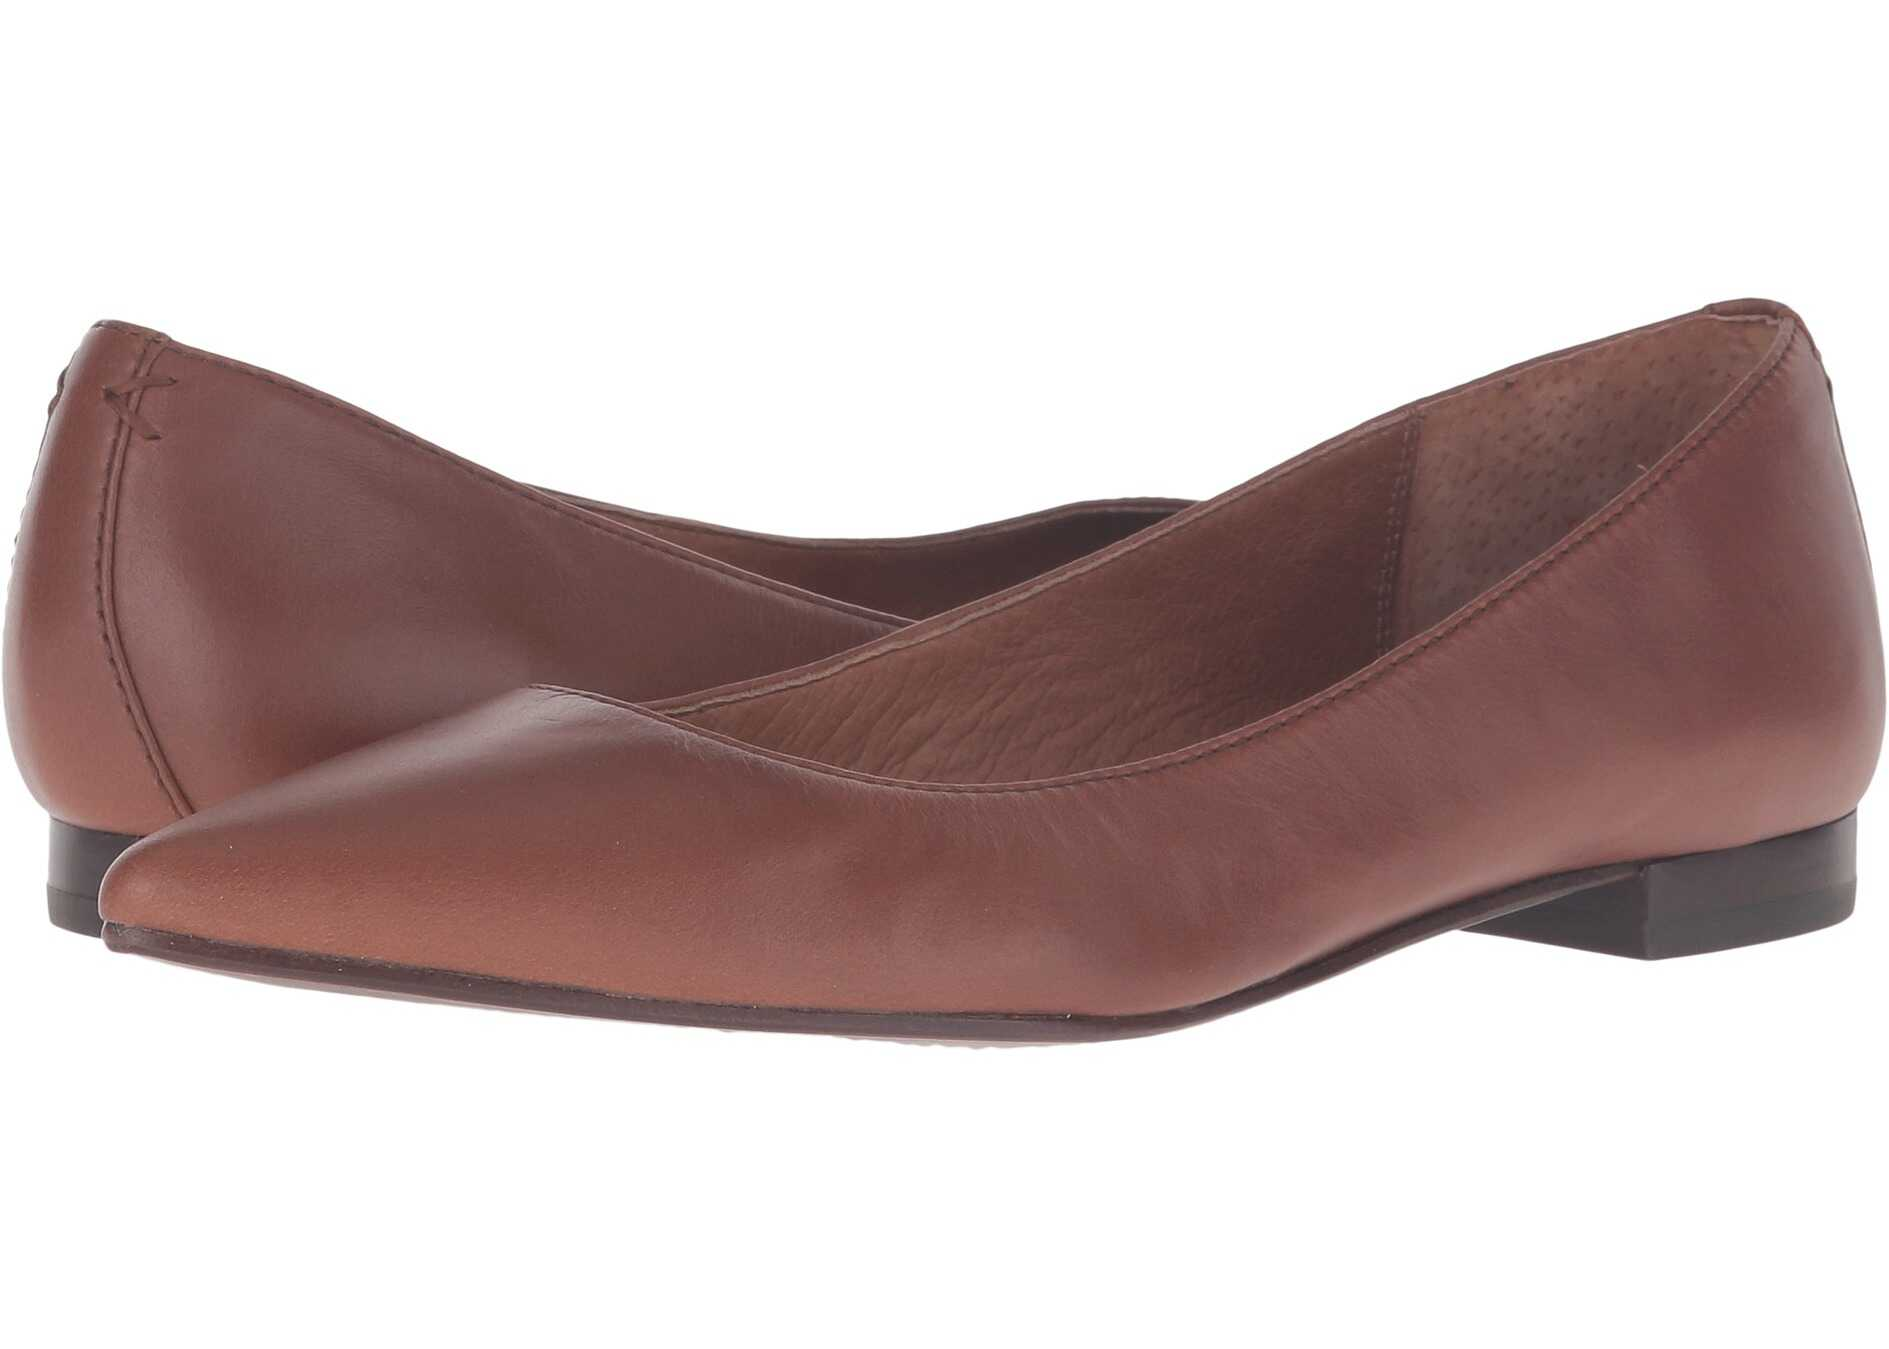 Frye Sienna Ballet Wood Soft Full Grain